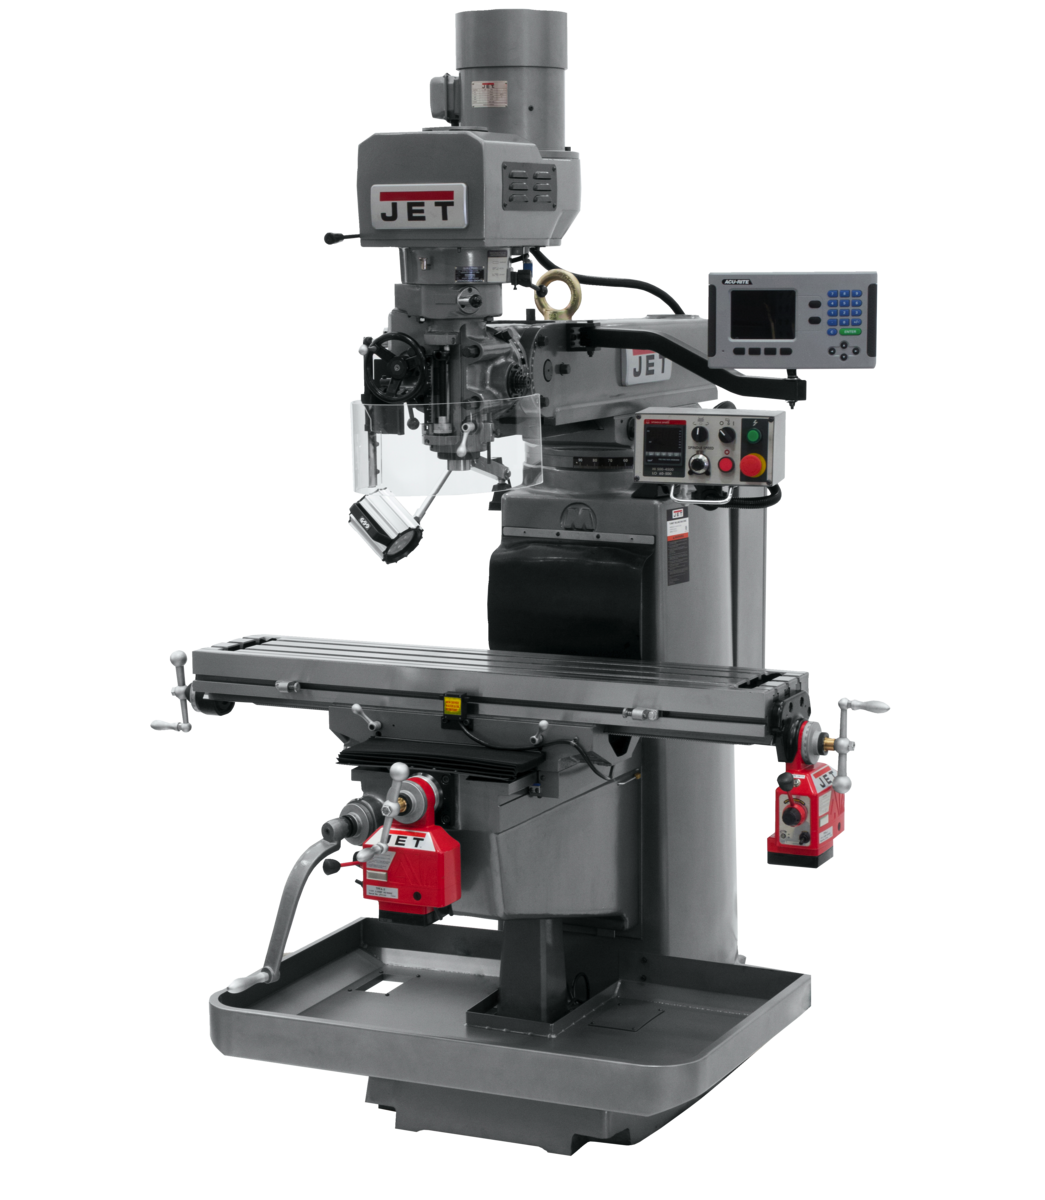 JTM-1050EVS2/230 Mill With 3-Axis Acu-Rite 203 DRO (Quill) With X and Y-Axis Powerfeeds